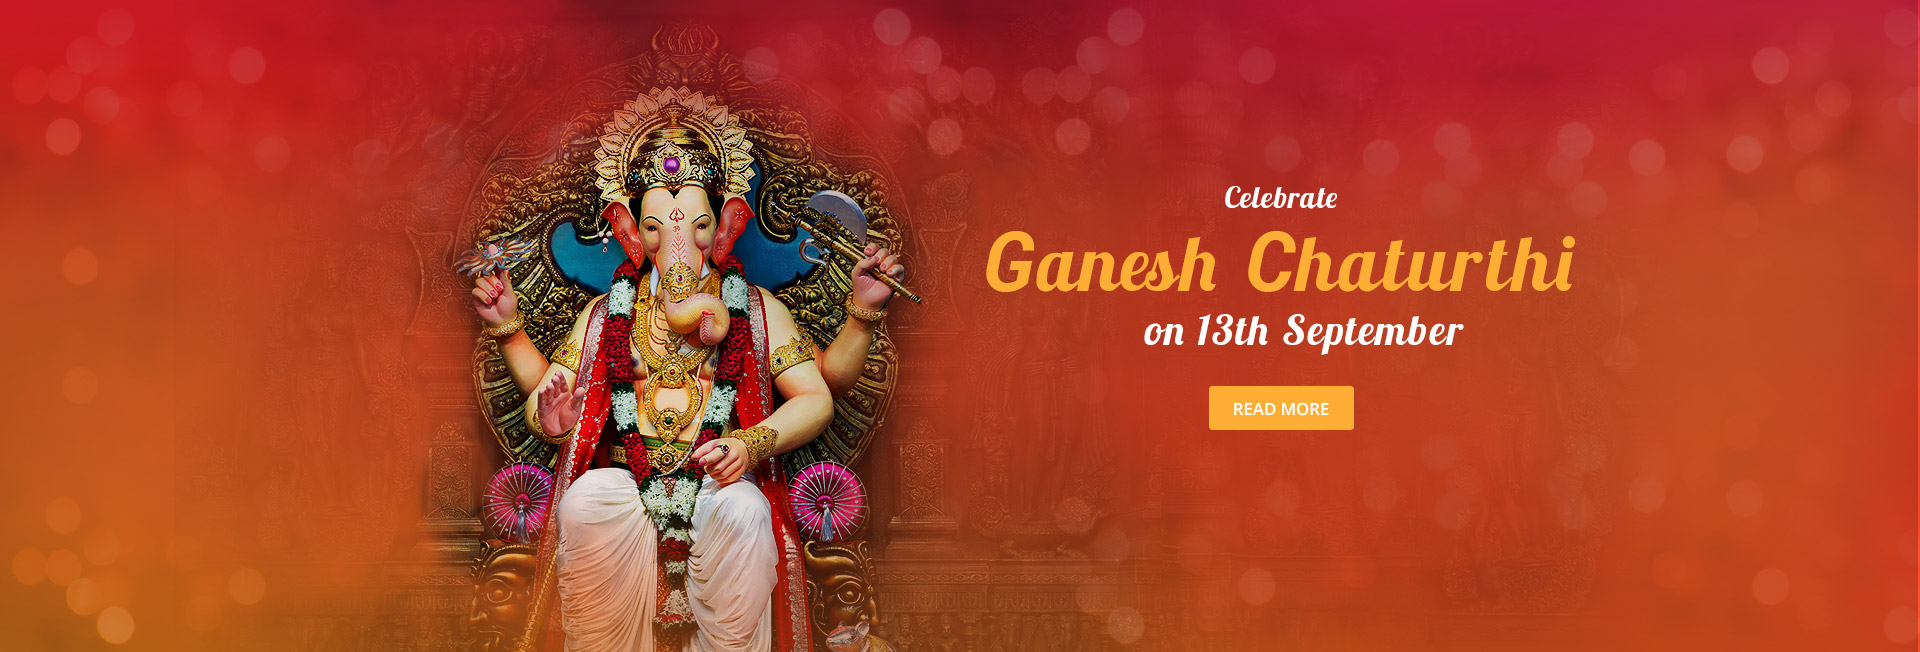 Celebrate Ganesh Chaturthi on 13th September